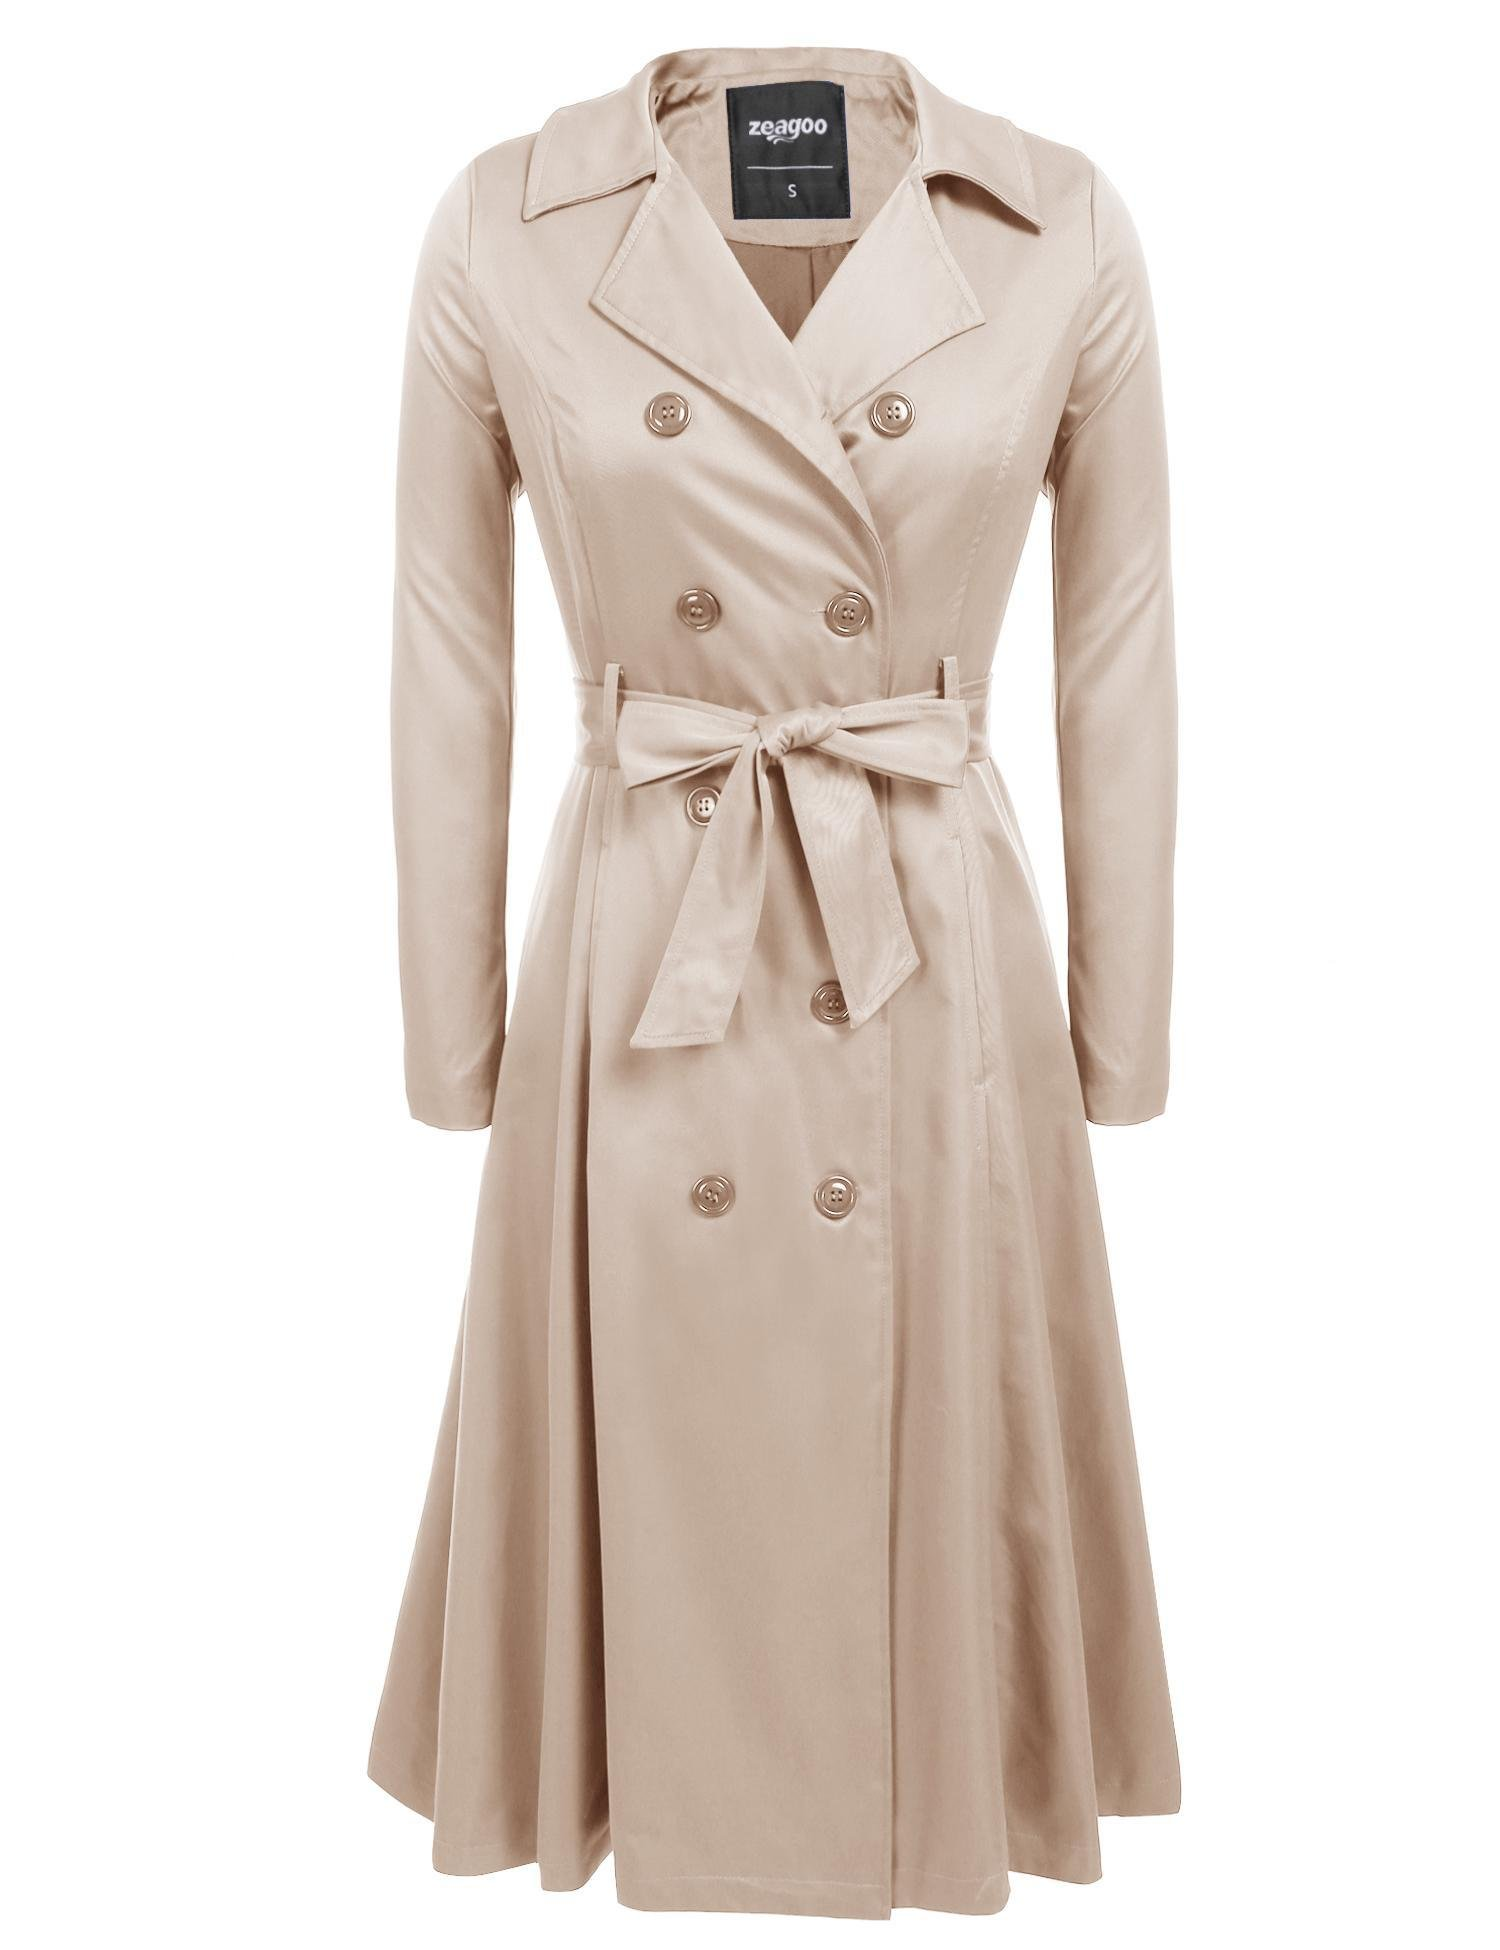 Zeagoo Womens Slim Double-breasted Wind Coats, Apricot, X-Large by Zeagoo